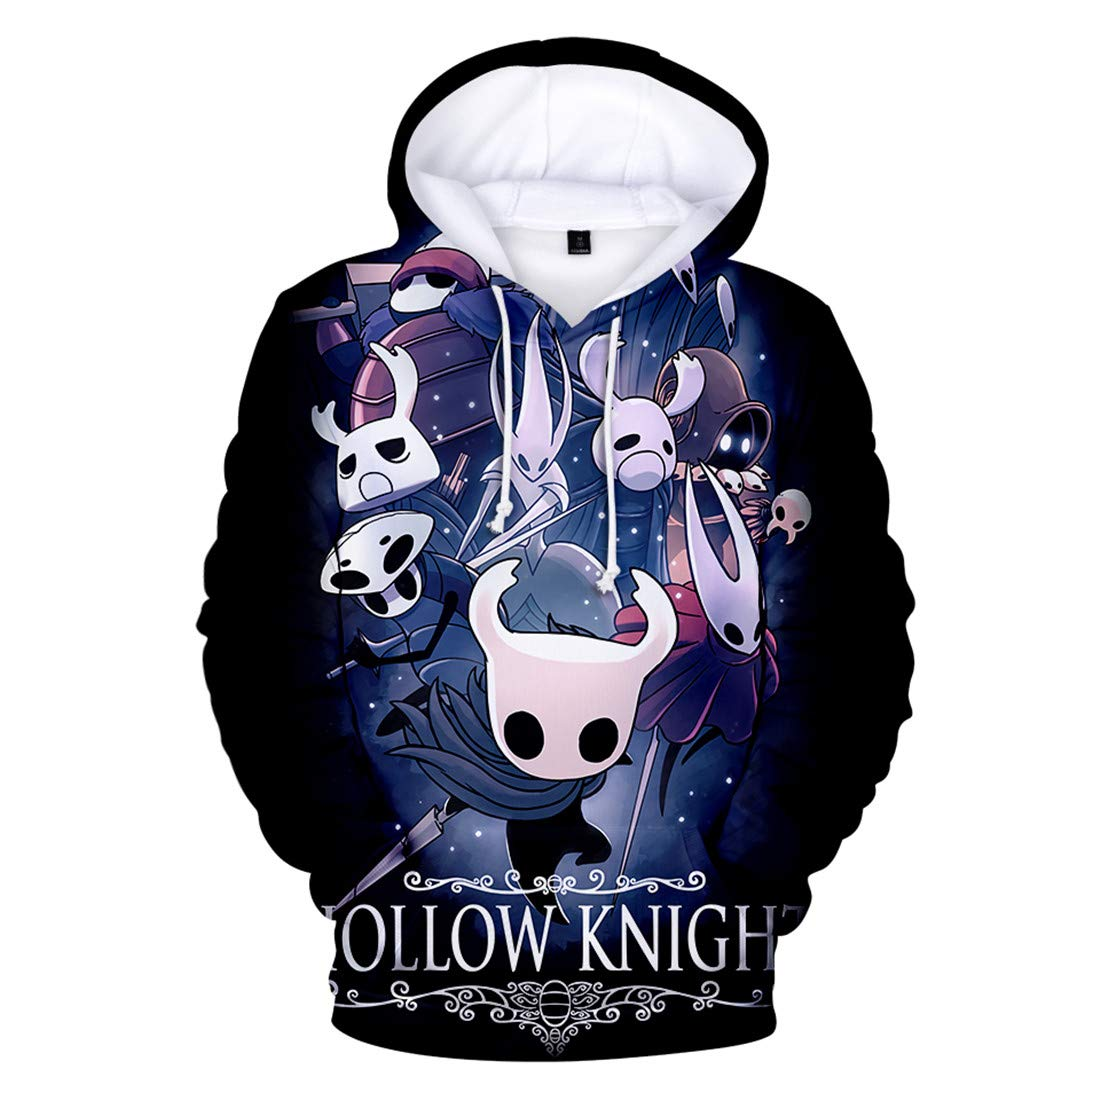 MIYECC Unisex Hollow Knight 3D Printed Hoodie Hot Pullover Game Fans Hooded Sweatshirts